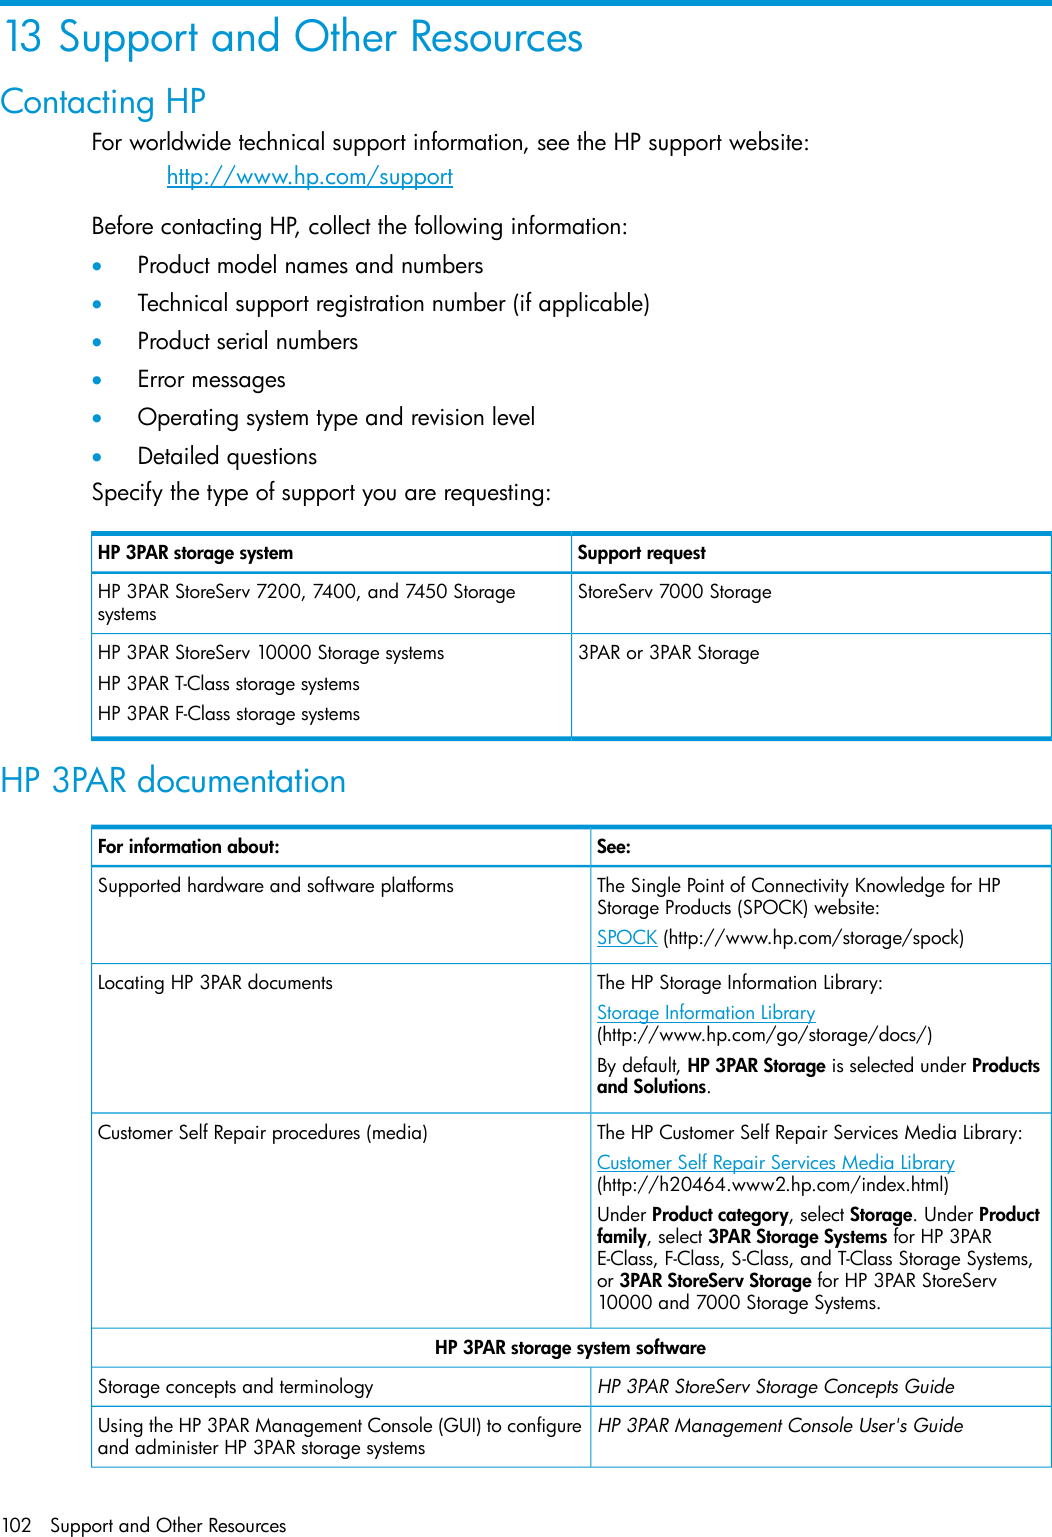 Hp 3Par Online Import Software Users Guide For EMC Storage Data